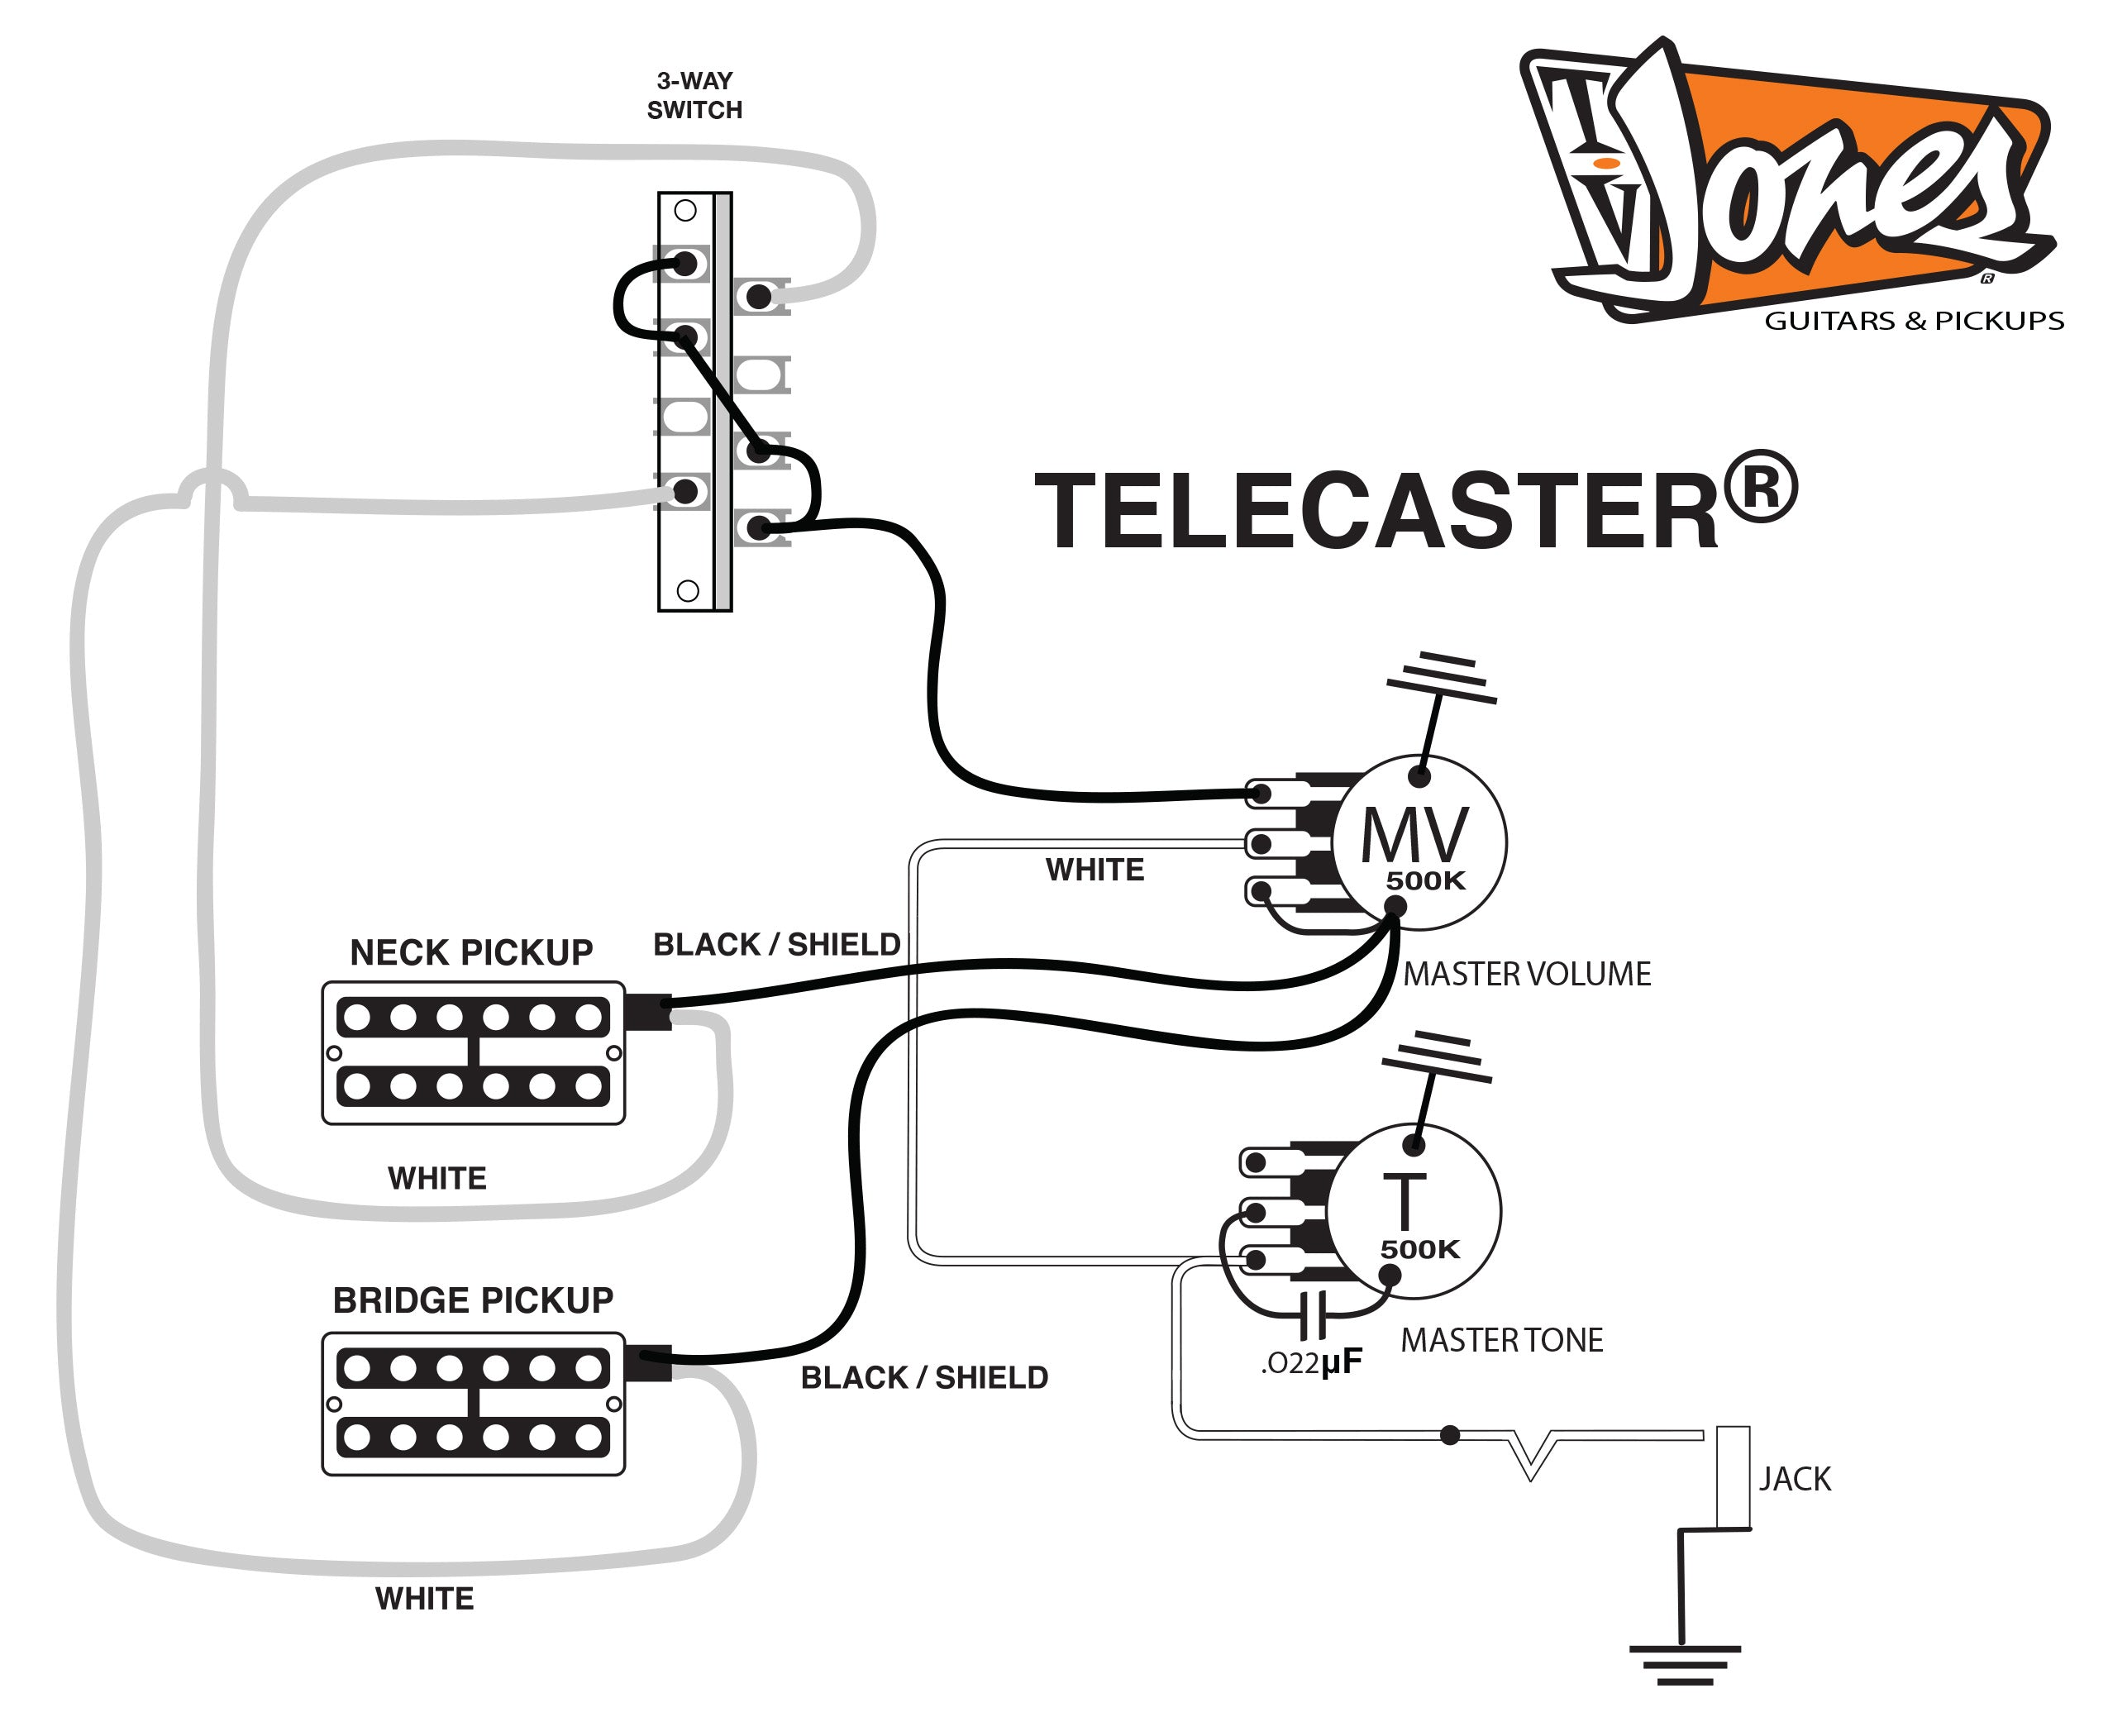 Gretsch Wiring Schematics | Wiring Diagram on dean ml wiring diagram, gator wiring diagram, johnson wiring diagram, silvertone wiring diagram, fishman wiring diagram, korg wiring diagram, gibson wiring diagram, stratocaster wiring diagram, taylor wiring diagram, musicman wiring diagram, mosrite wiring diagram, jackson wiring diagram, hagstrom wiring diagram, duncan performer wiring diagram, manufacturing wiring diagram, kurzweil wiring diagram, hamer wiring diagram, harmony wiring diagram, michael kelly wiring diagram, dimarzio wiring diagram,